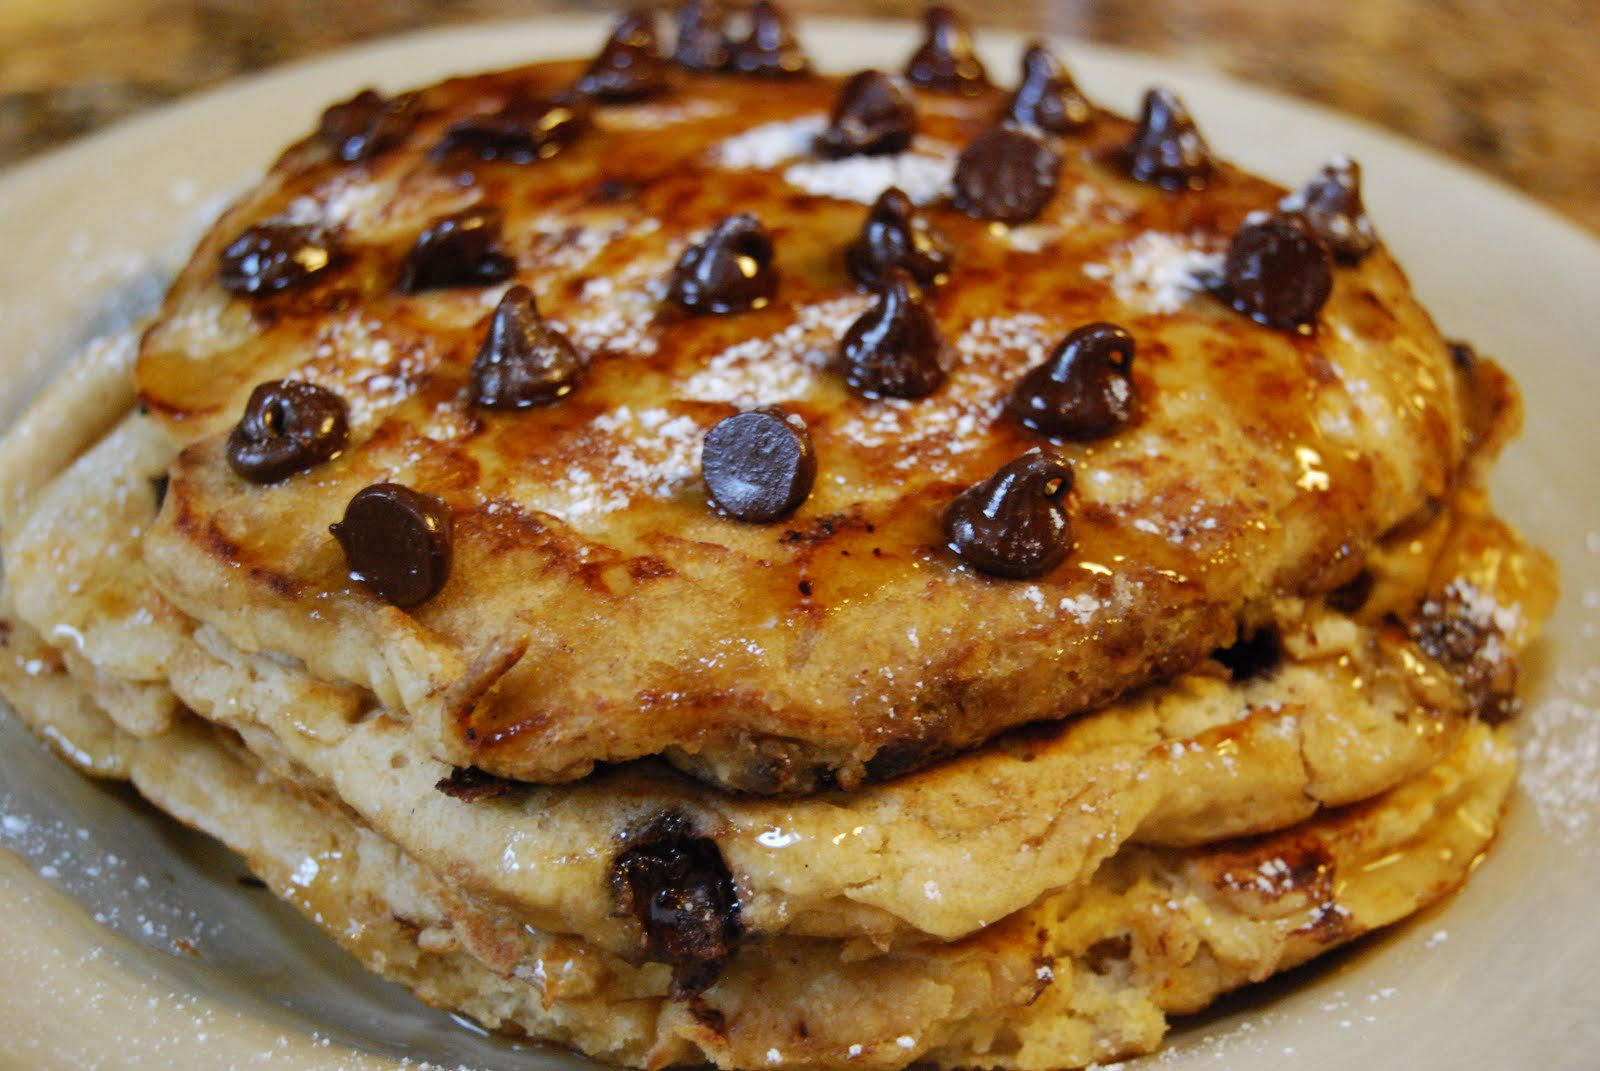 Whole Wheat Chocolate Chip Pancakes - Macaroni and Cheesecake